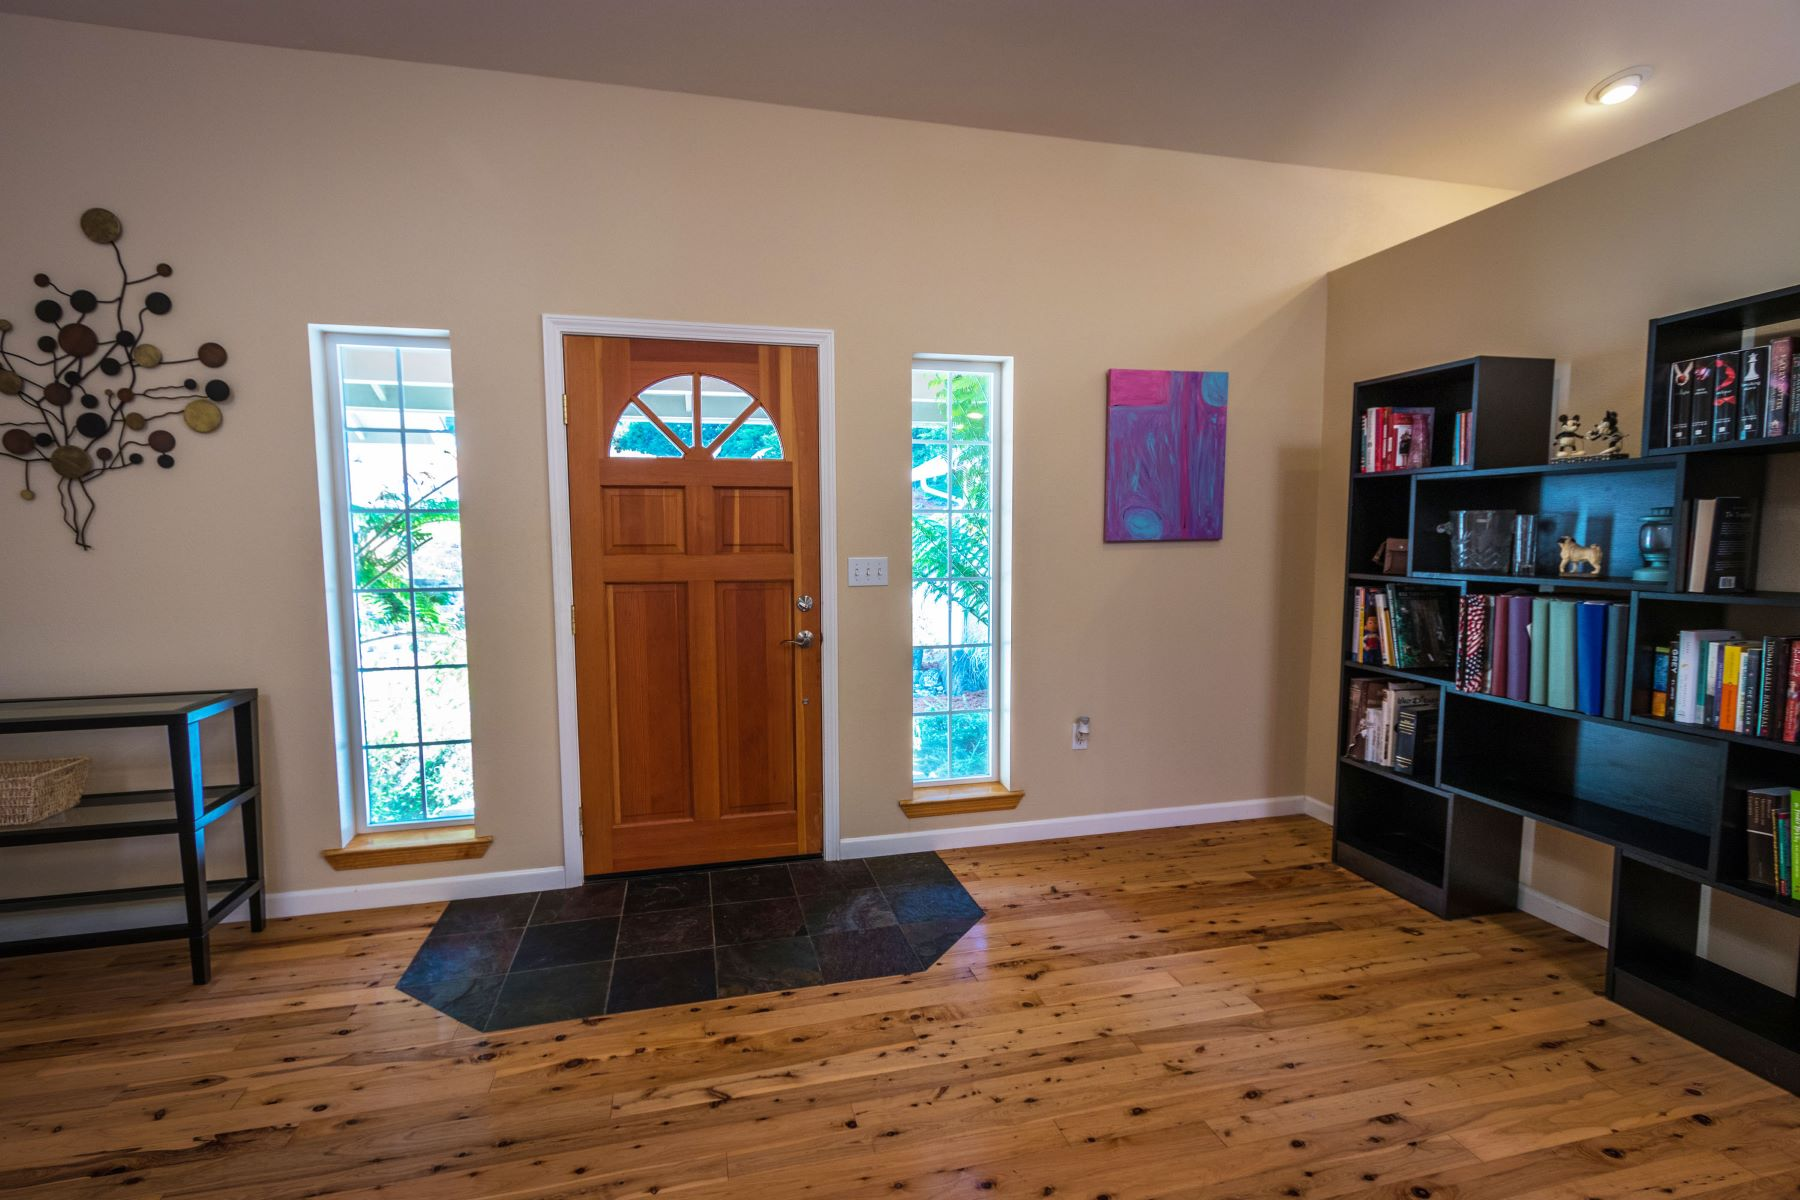 Additional photo for property listing at Custom Sunbelt Home 18960 Quail Court Fort Bragg, California 95437 United States